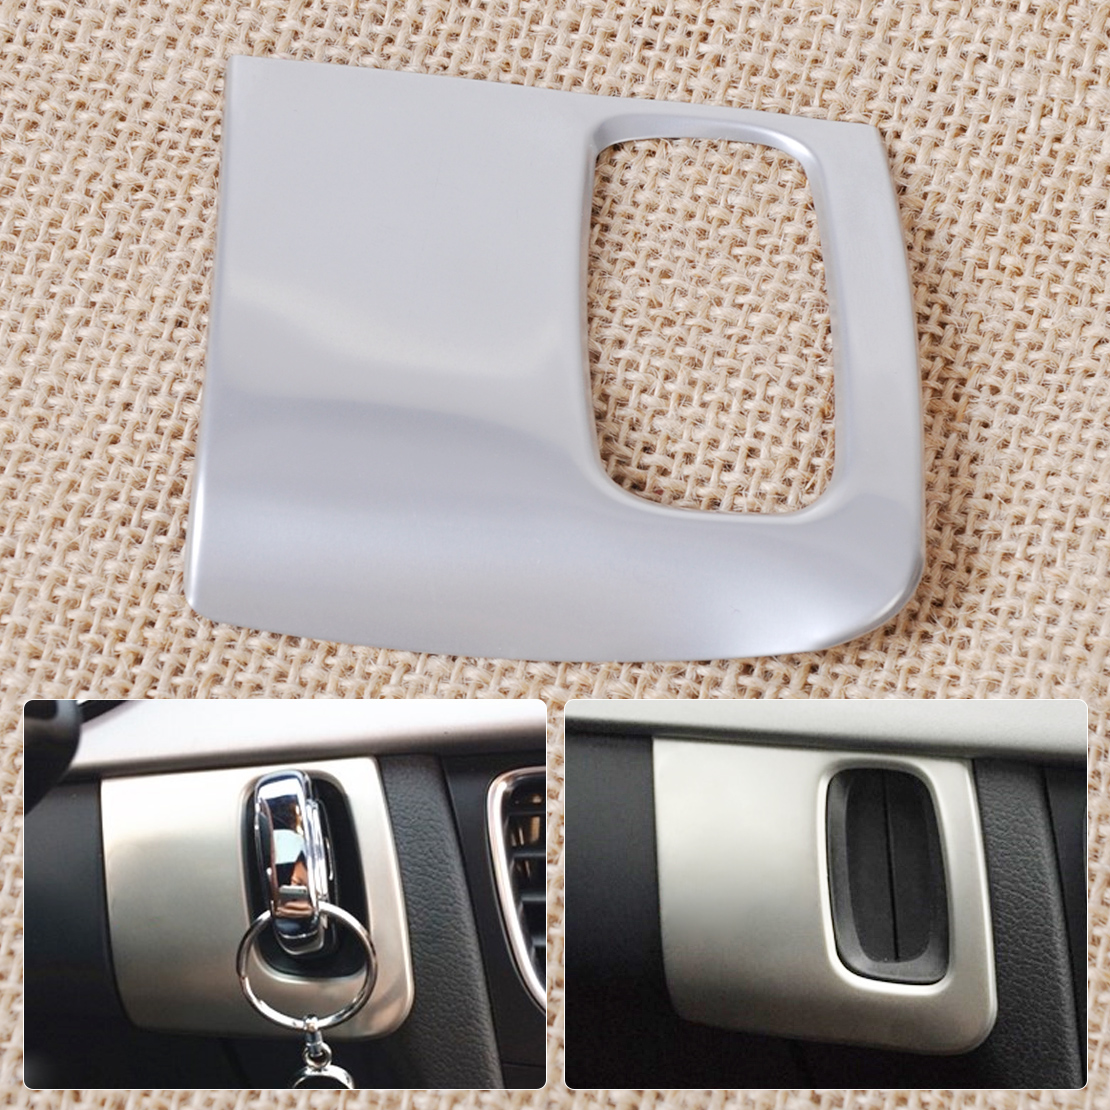 beler 1Pc Silver Stainless Steel Dash Ignition Keyhole Molding Cover Trim for <font><b>Audi</b></font> <font><b>A4</b></font> A5 2009 <font><b>2010</b></font> 2011 2012 2013 2014 2015 image